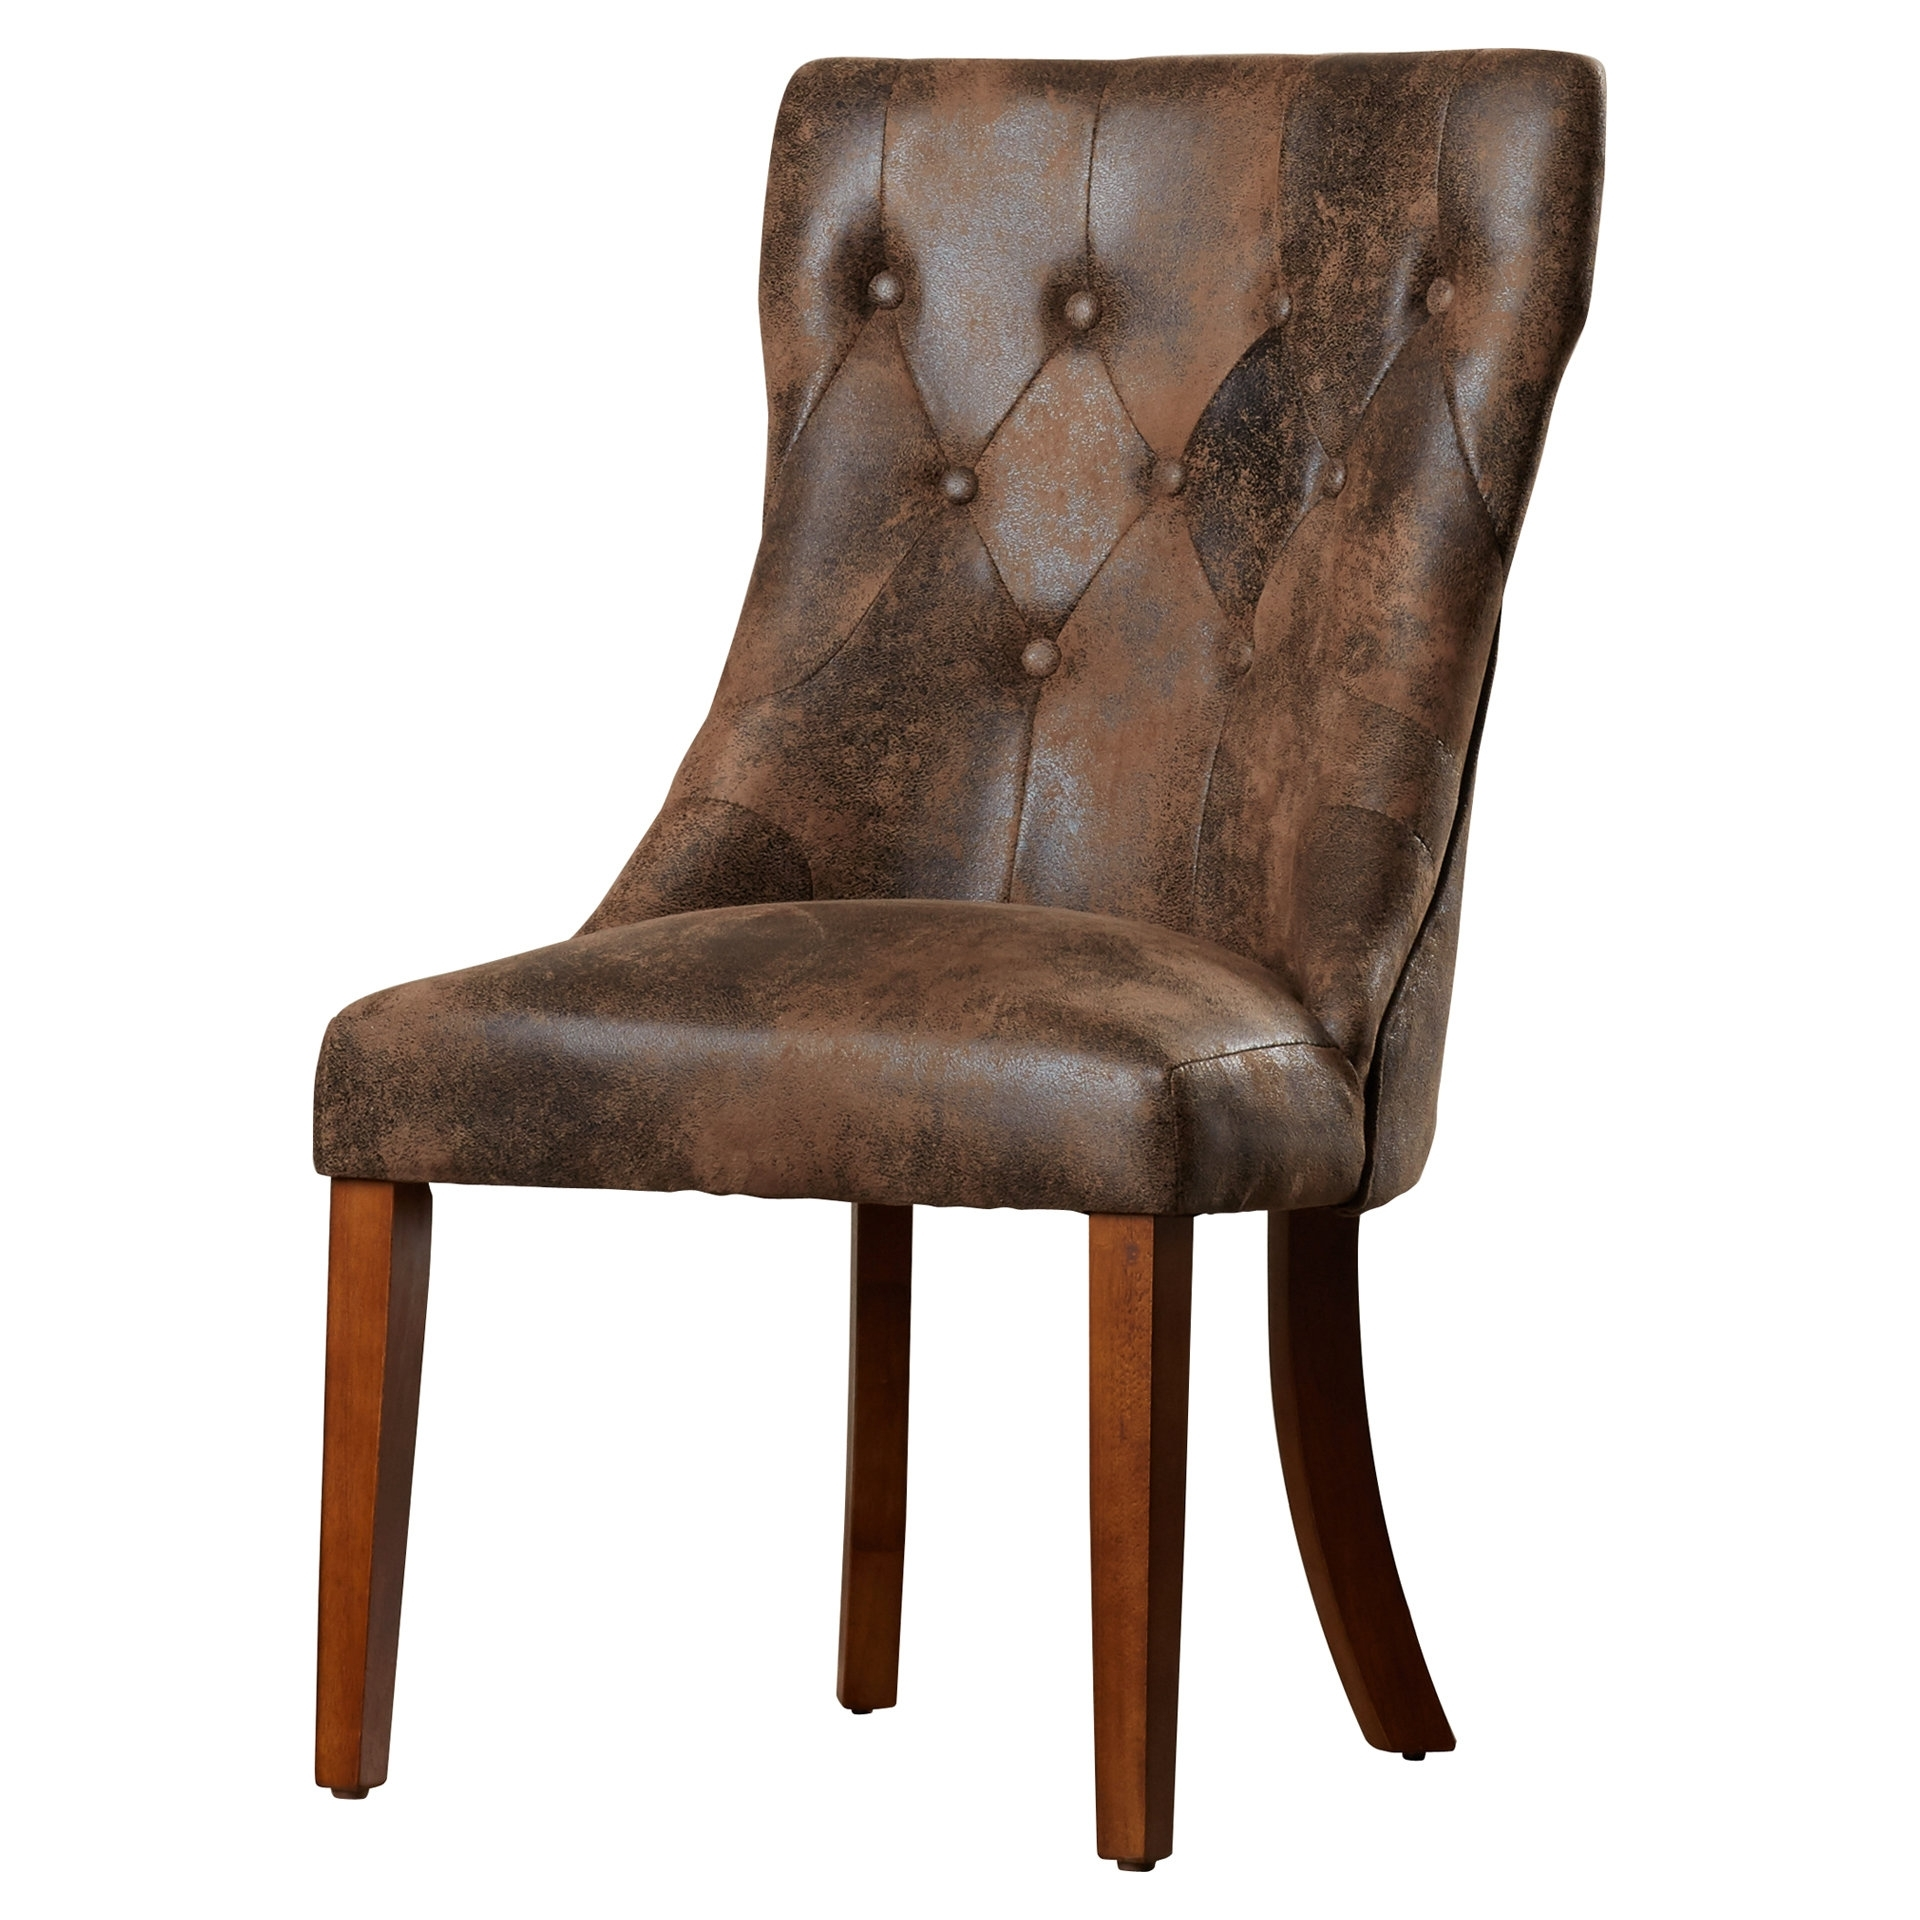 Most Popular Caira Upholstered Arm Chairs With Regard To Lark Manor Parfondeval Upholstered Dining Chair & Reviews (View 19 of 20)